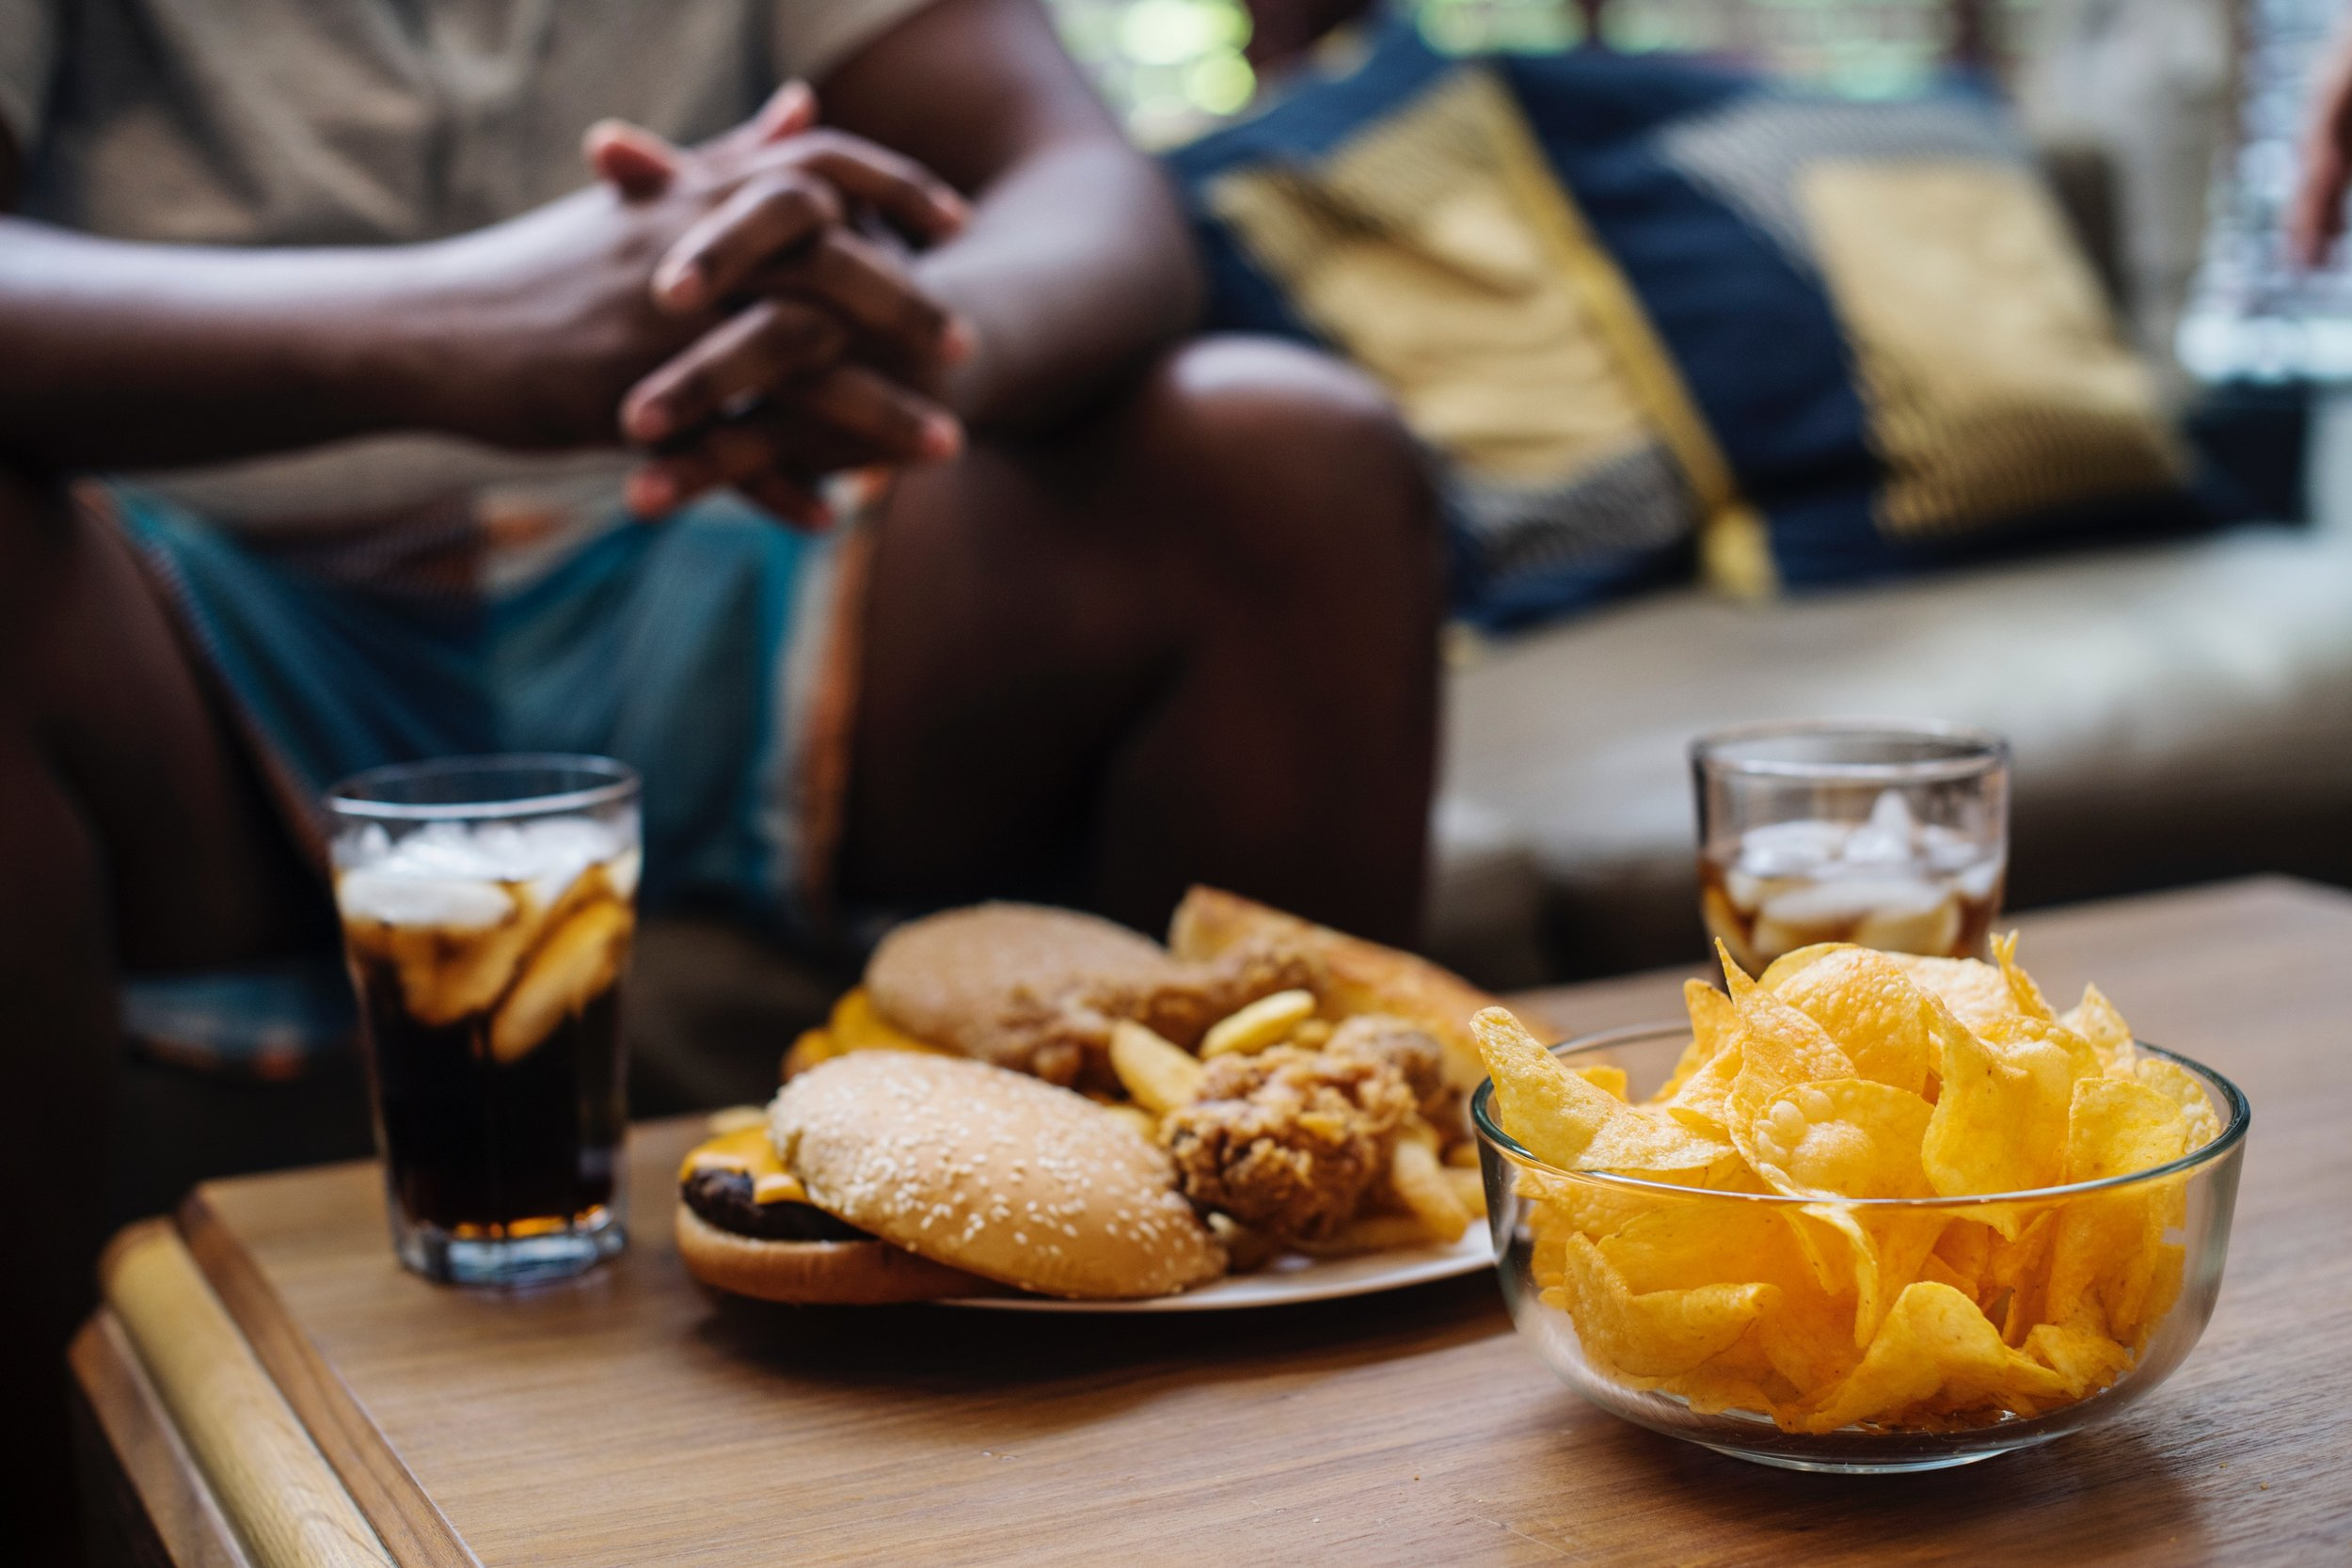 Burger, soda and chips are foods to avoid with prediabetes.